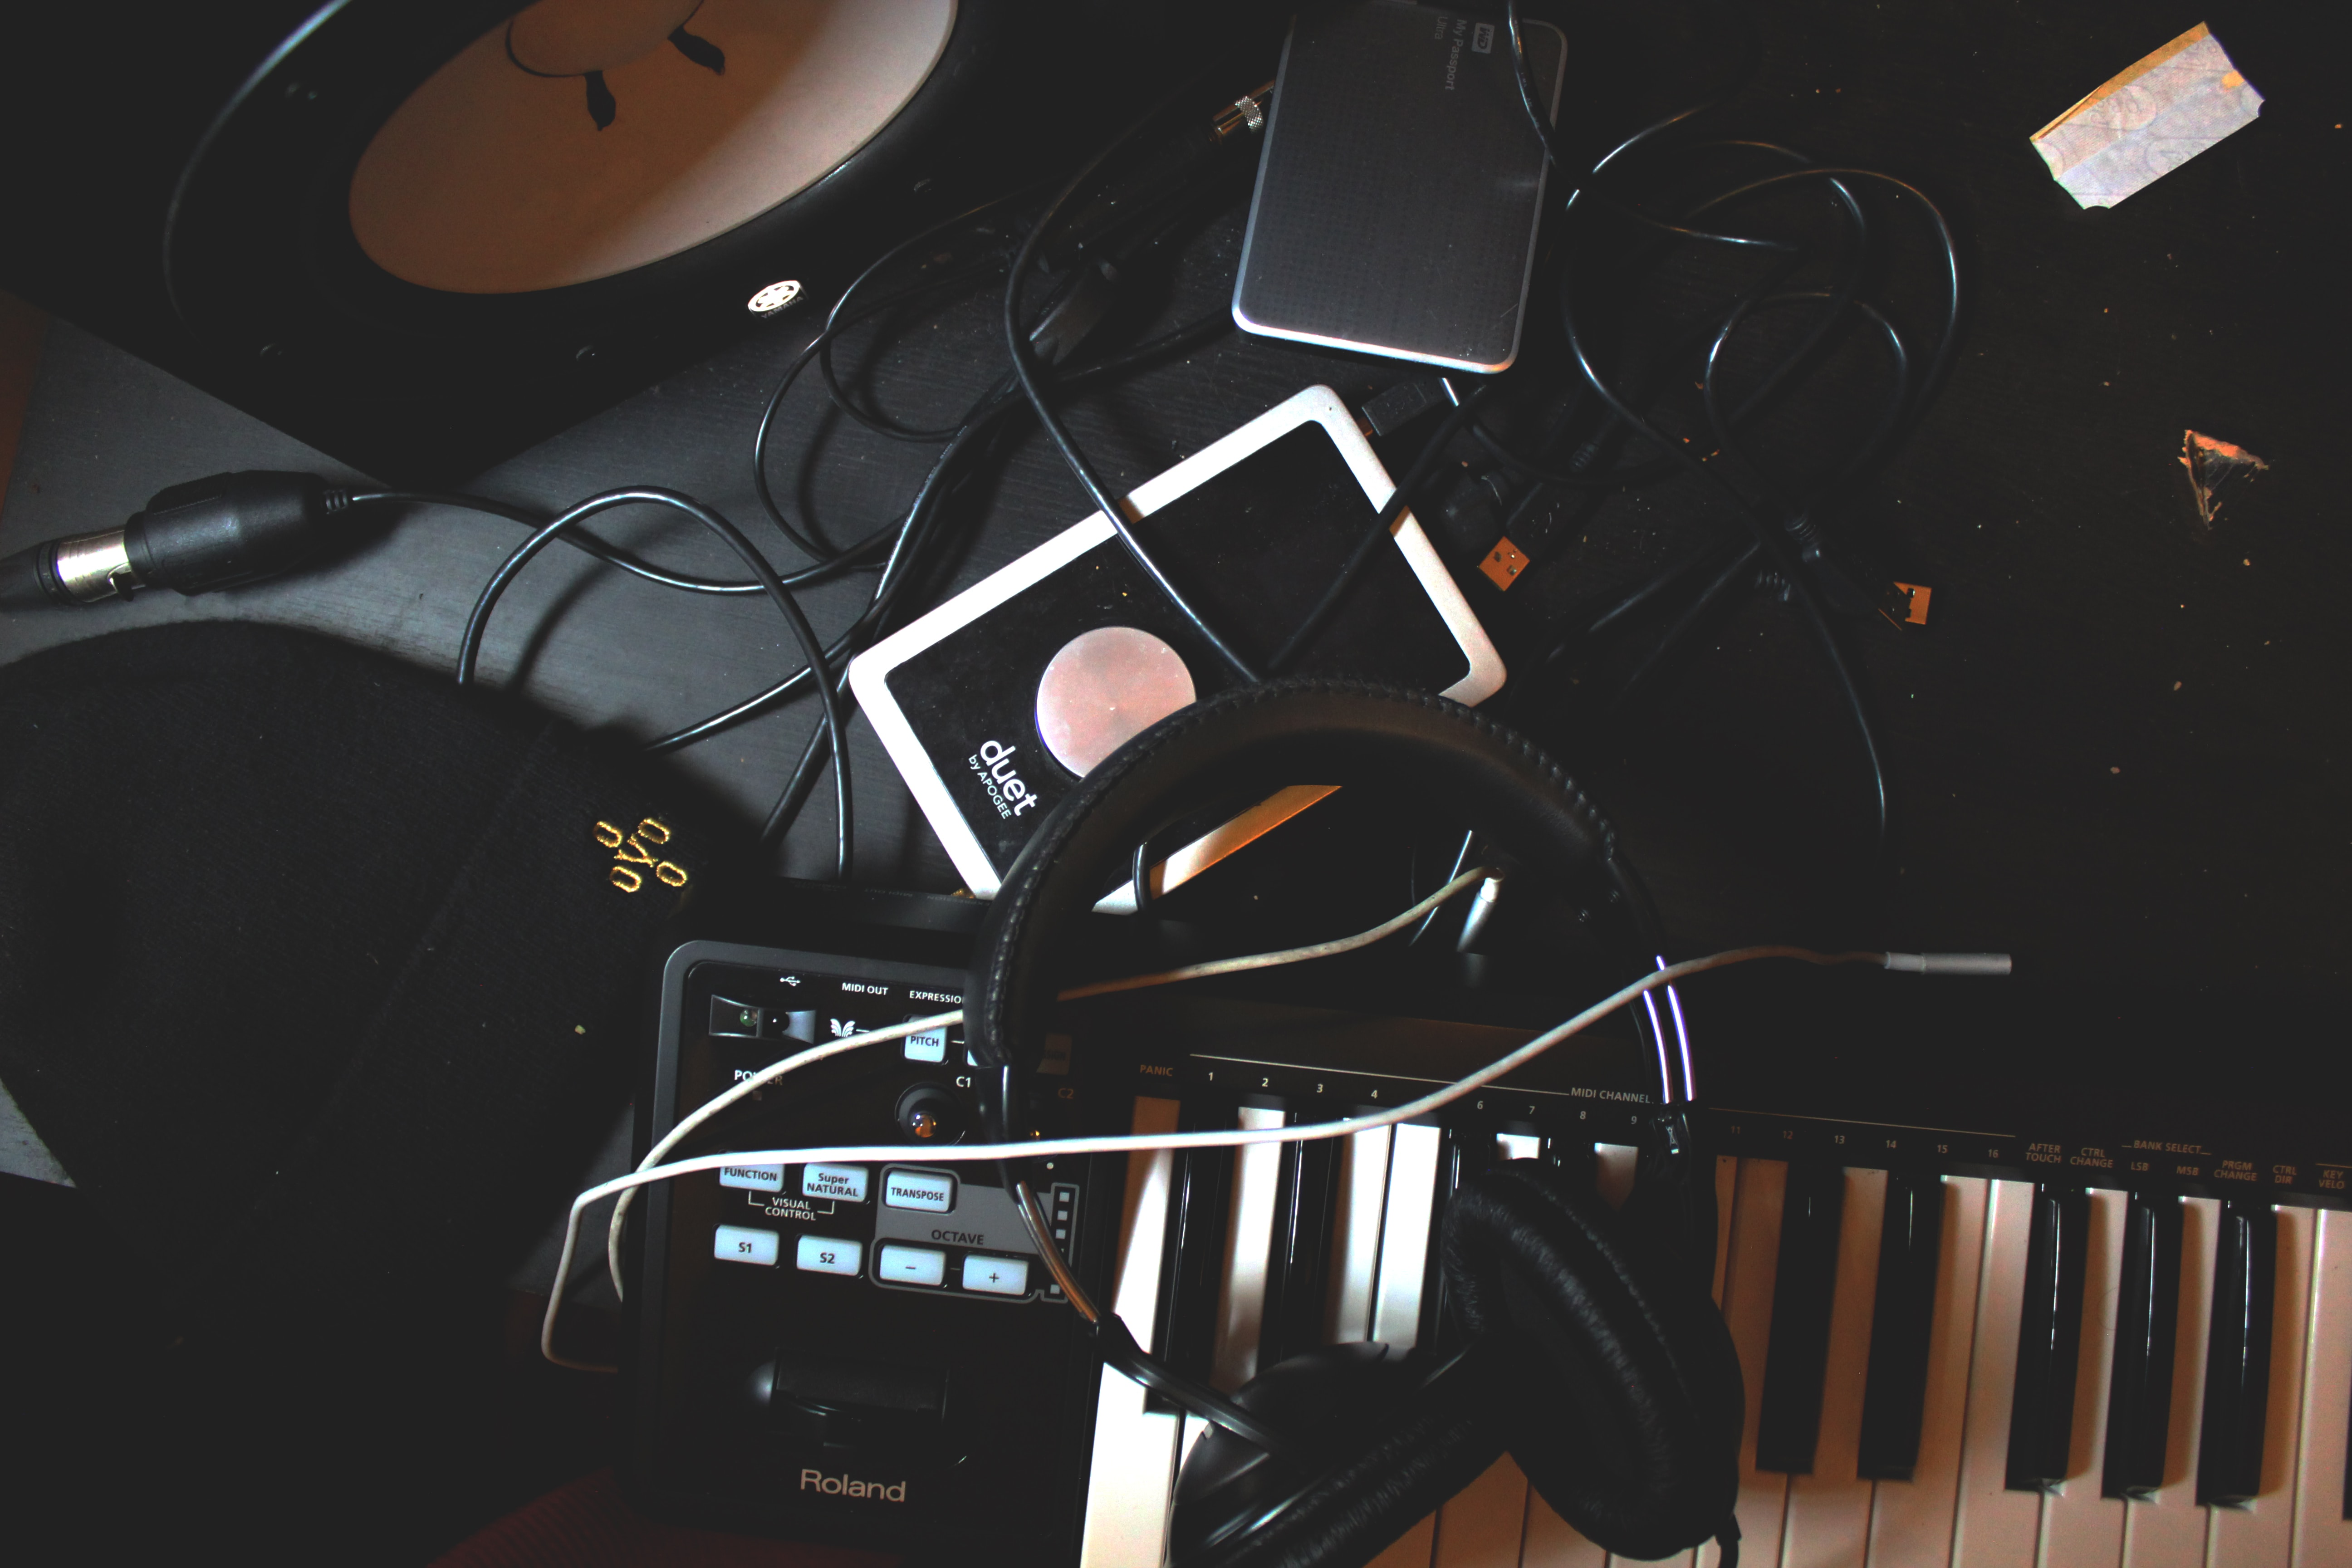 An array of musical products and cables piled messily on a table.